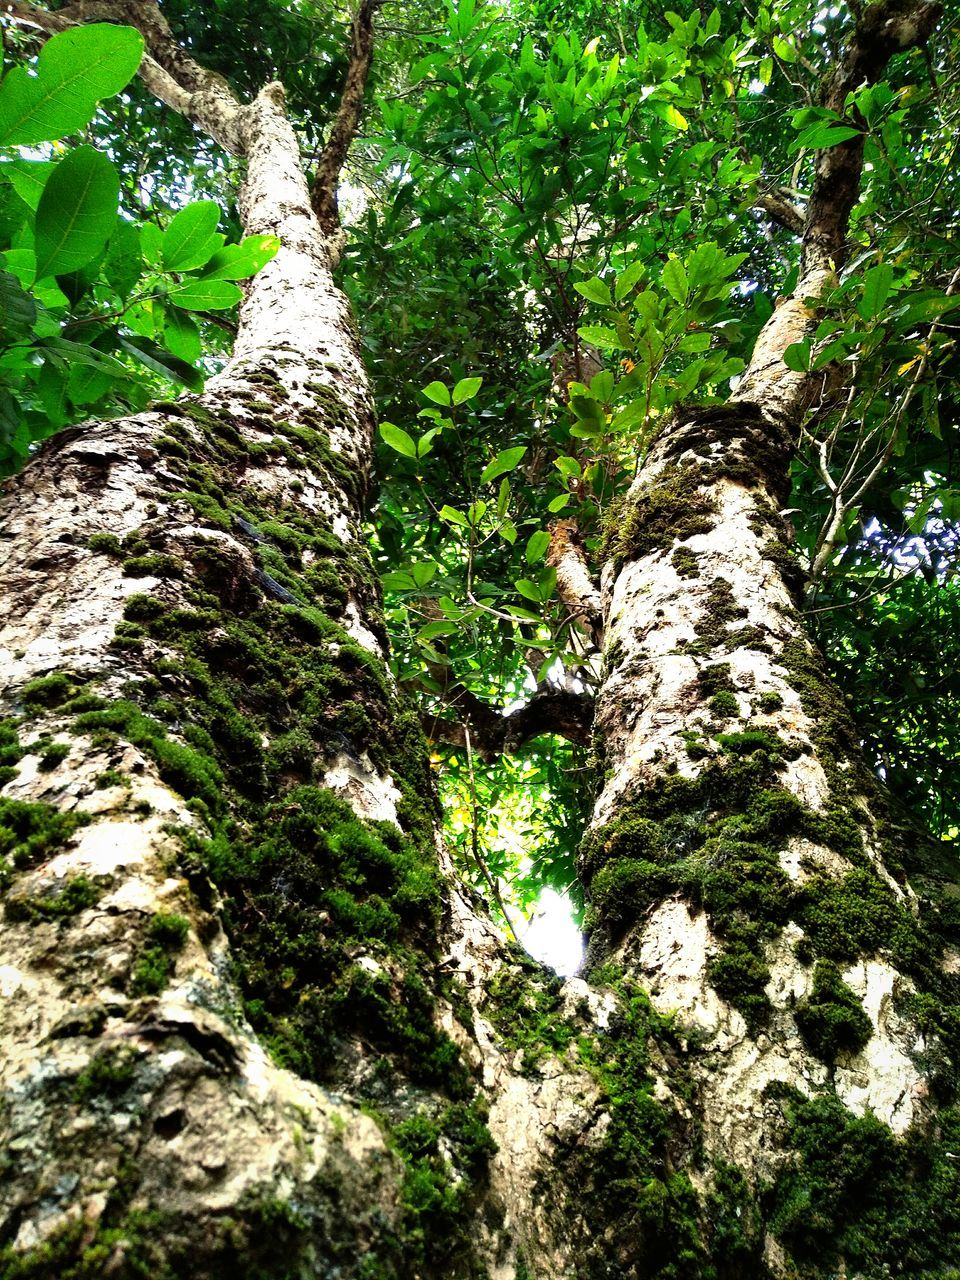 nature, tree trunk, tree, forest, growth, no people, low angle view, moss, day, outdoors, beauty in nature, close-up